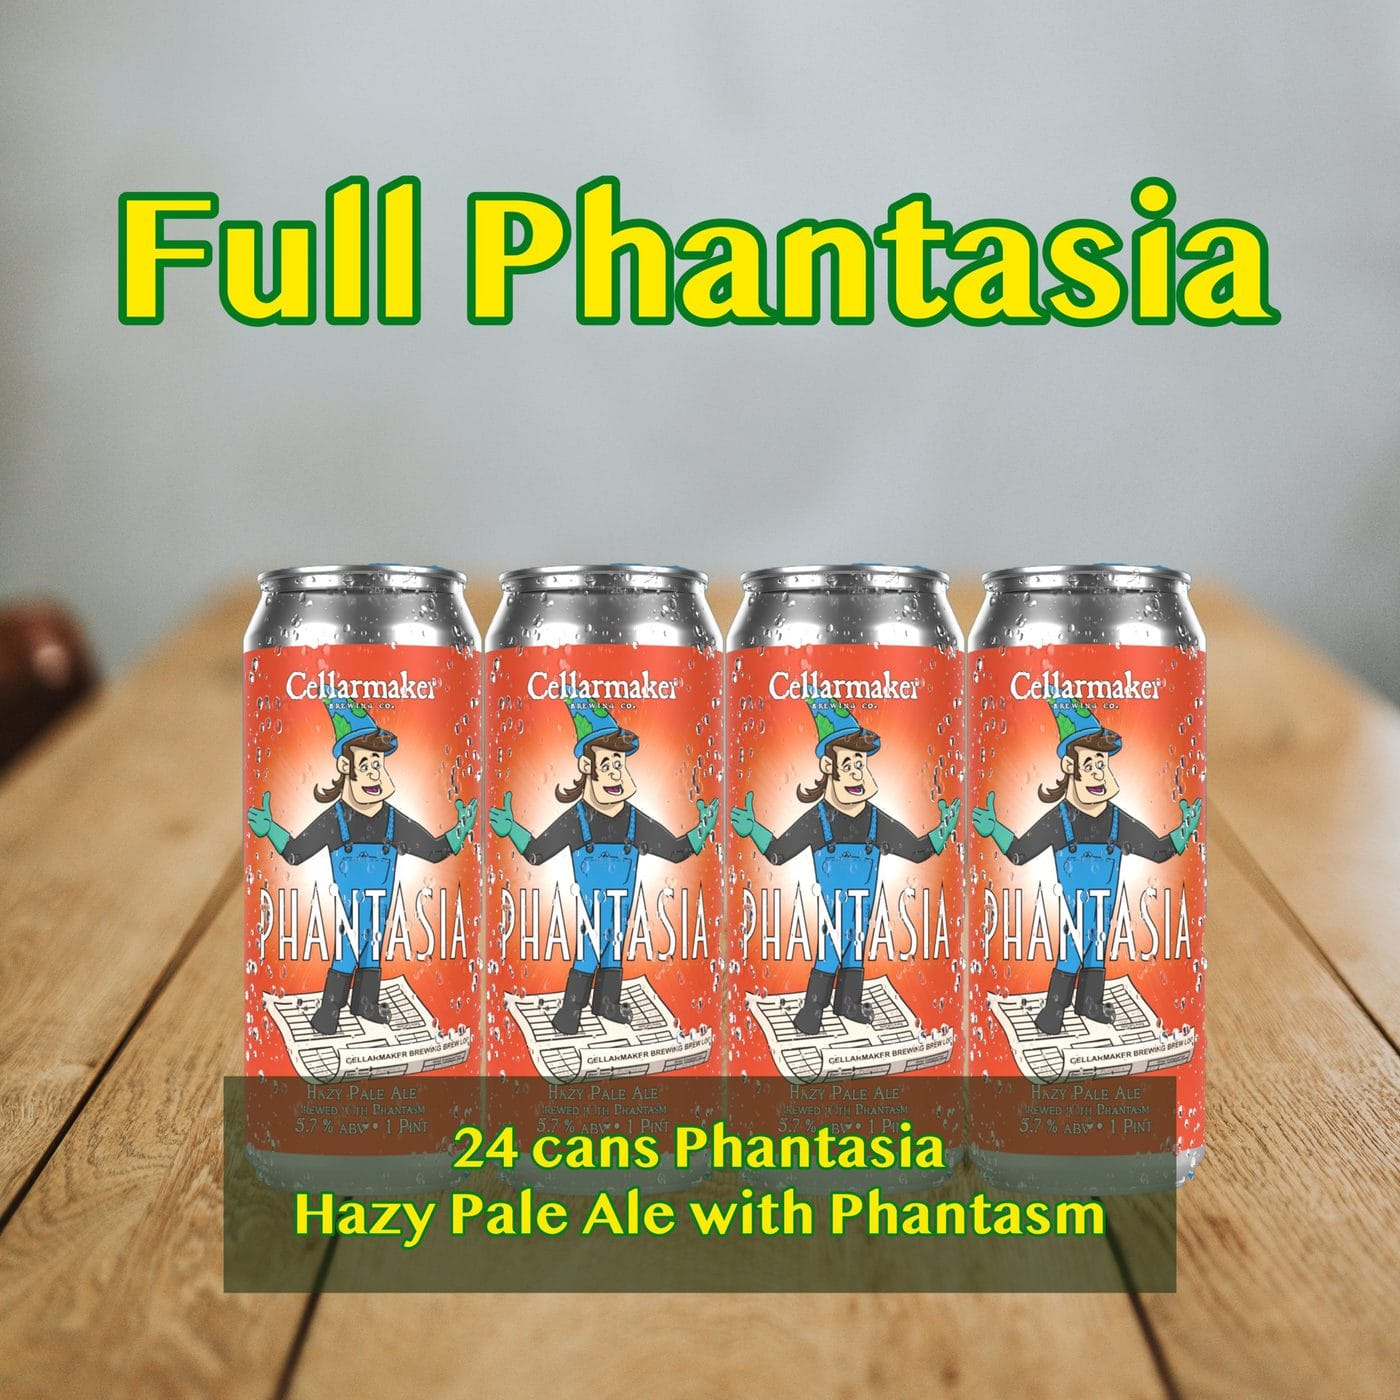 FULL CASE 24 CANS Phantasia New Hazy Pale Ale-  Shipping Out Tuesday 3/2 For Next Day Delivery*